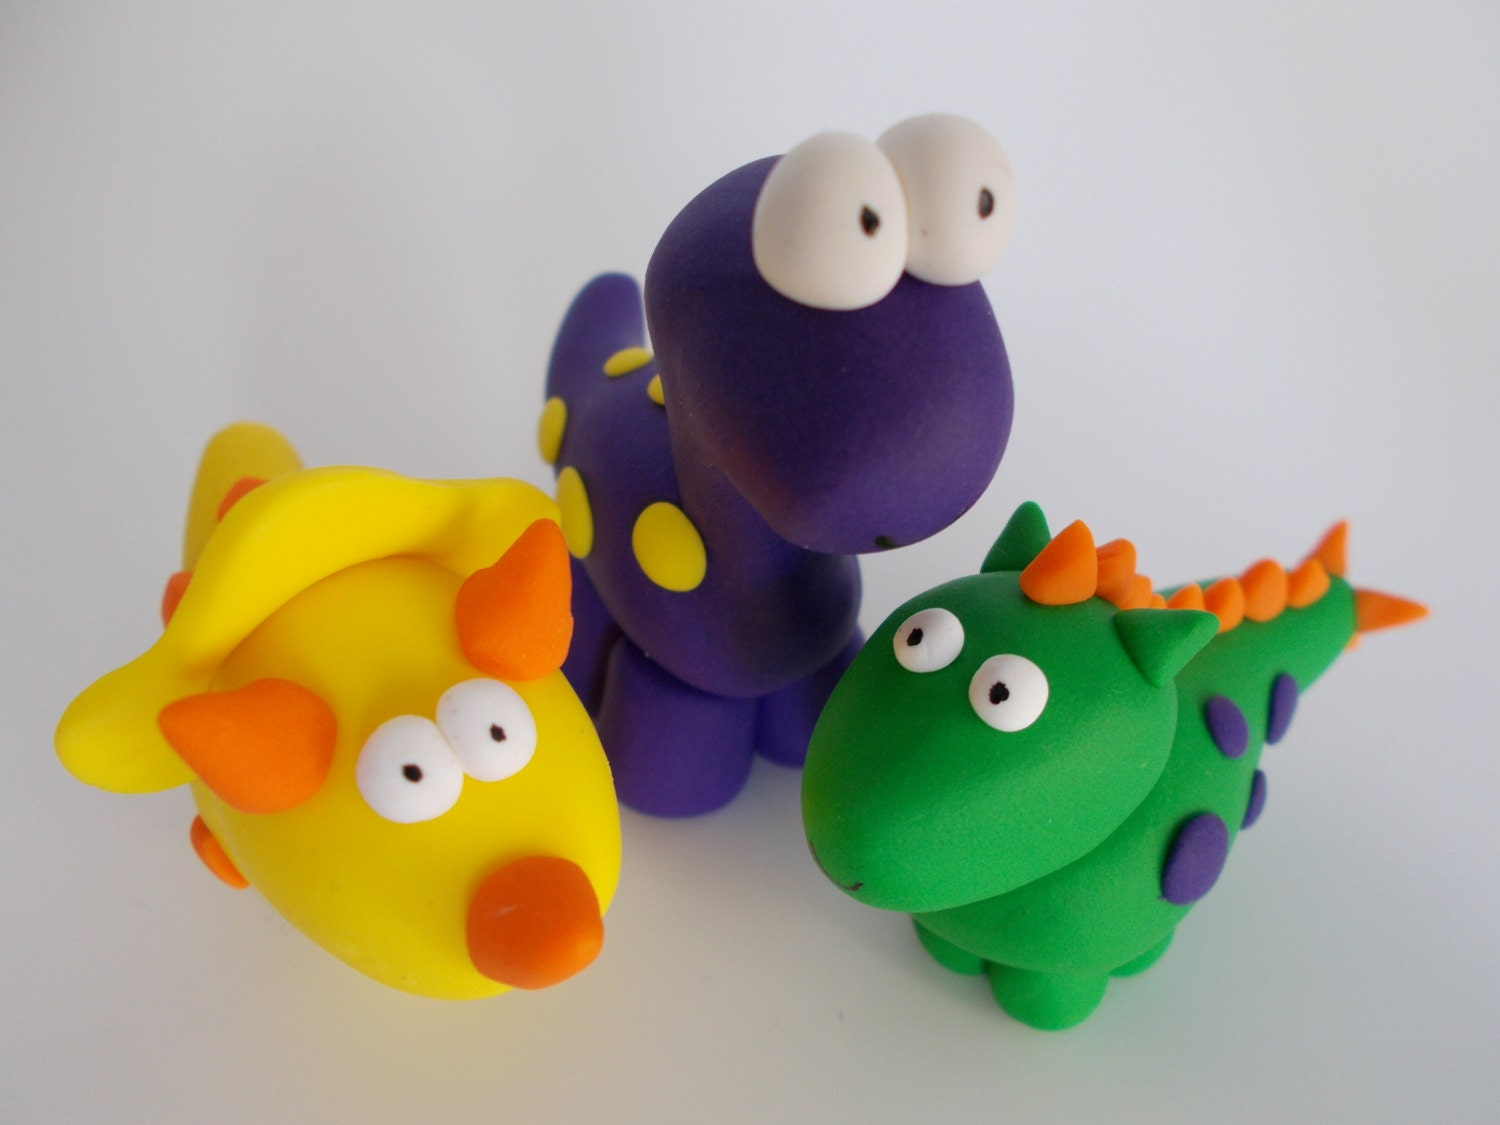 dinosaur cake topper set by amyallgoodthings on Etsy